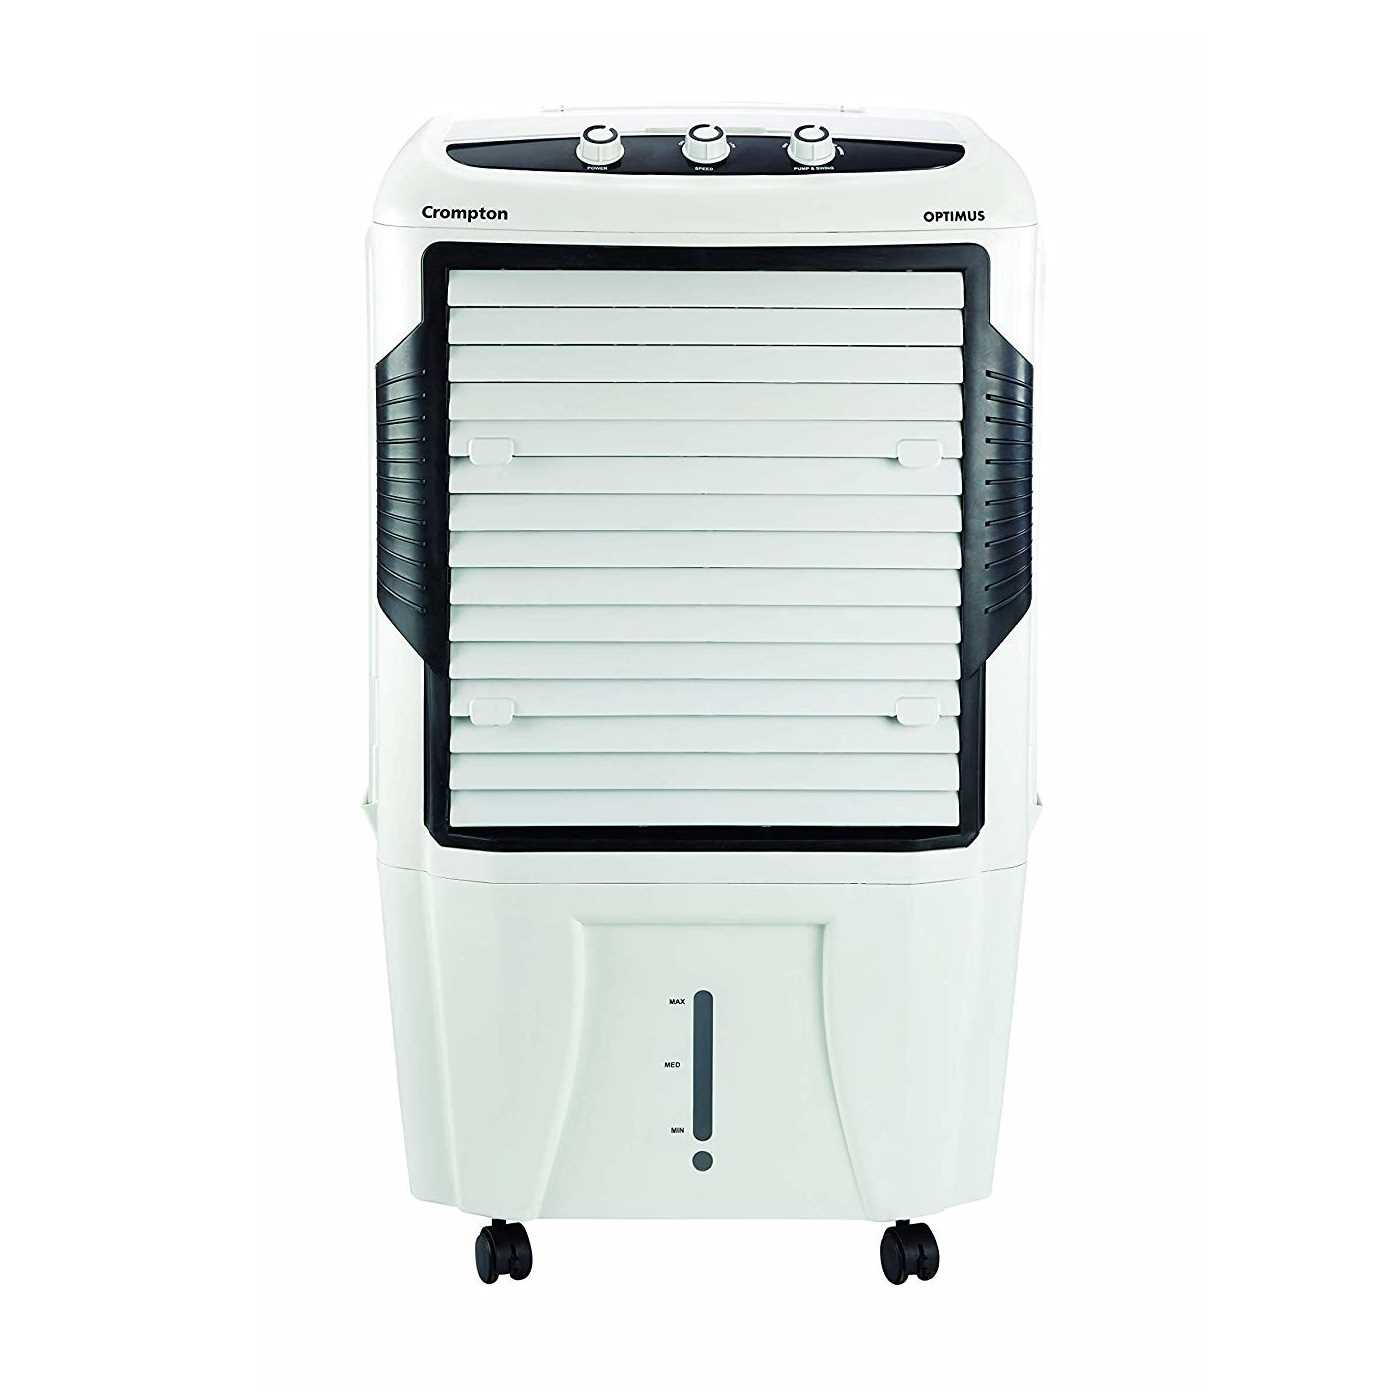 Crompton Optimus 65 Litre Desert Air Cooler